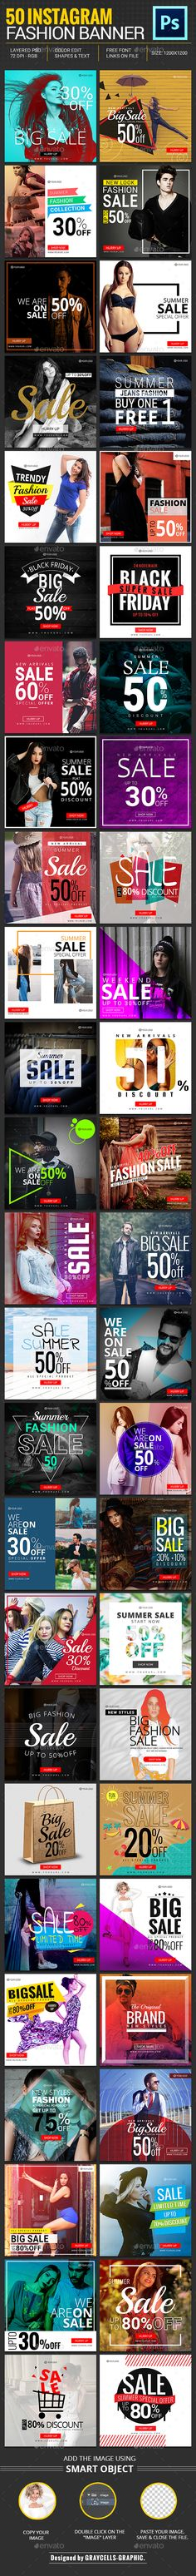 50 Instagram Promotional #Banners - #Social Media #Web Elements Download here: https://graphicriver.net/item/50-instagram-promotional-banners/19607834?ref=alena994